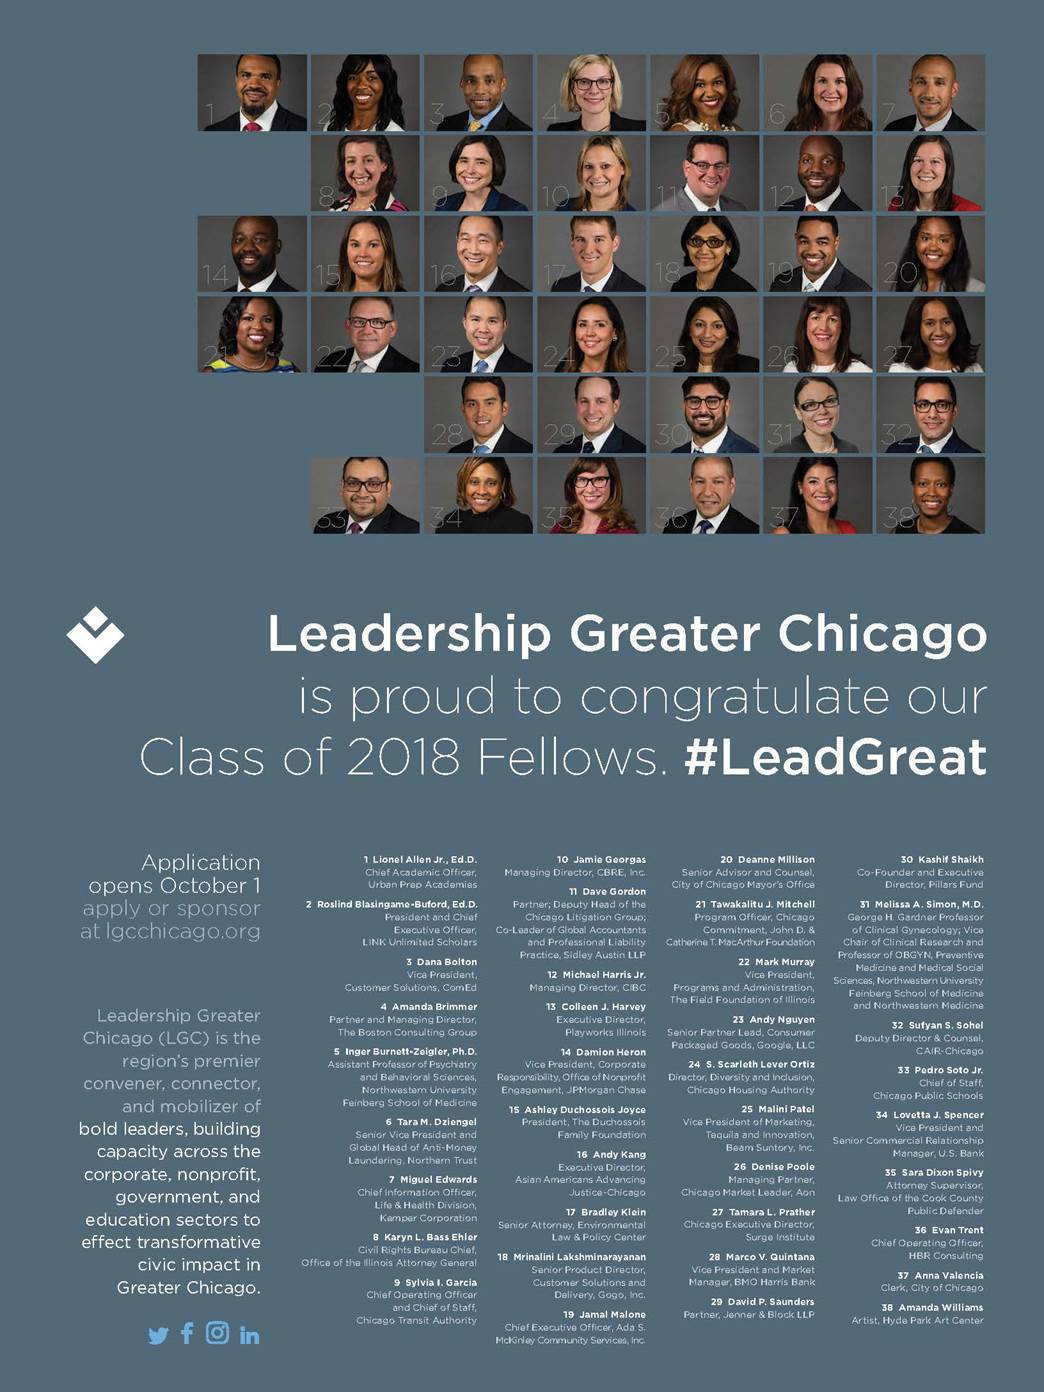 Ada CEO Featured in Crain's Among Leadership Greater Chicago